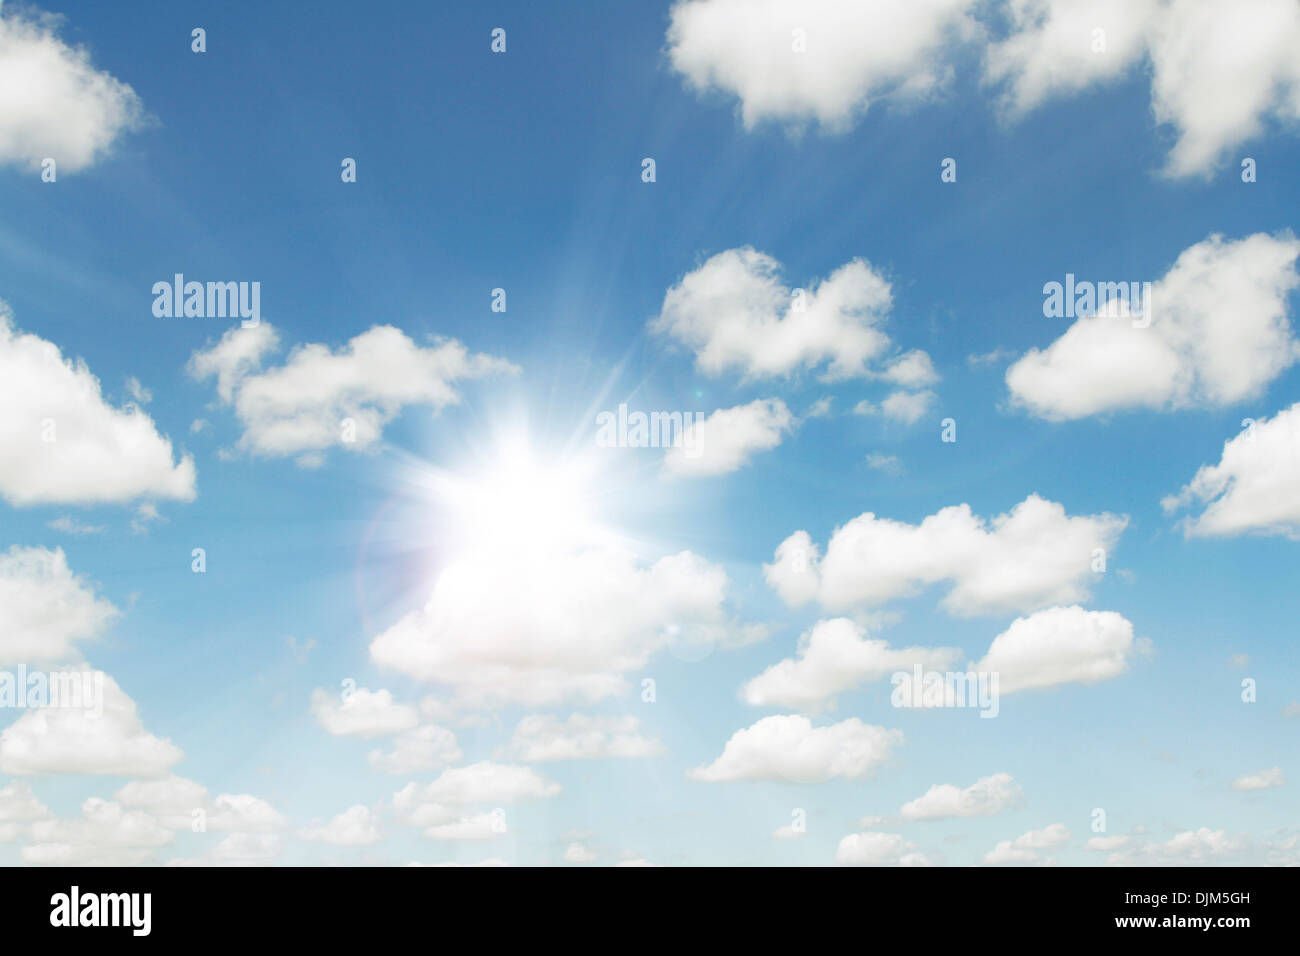 Bright sun in fluffy clouds sky - Stock Image